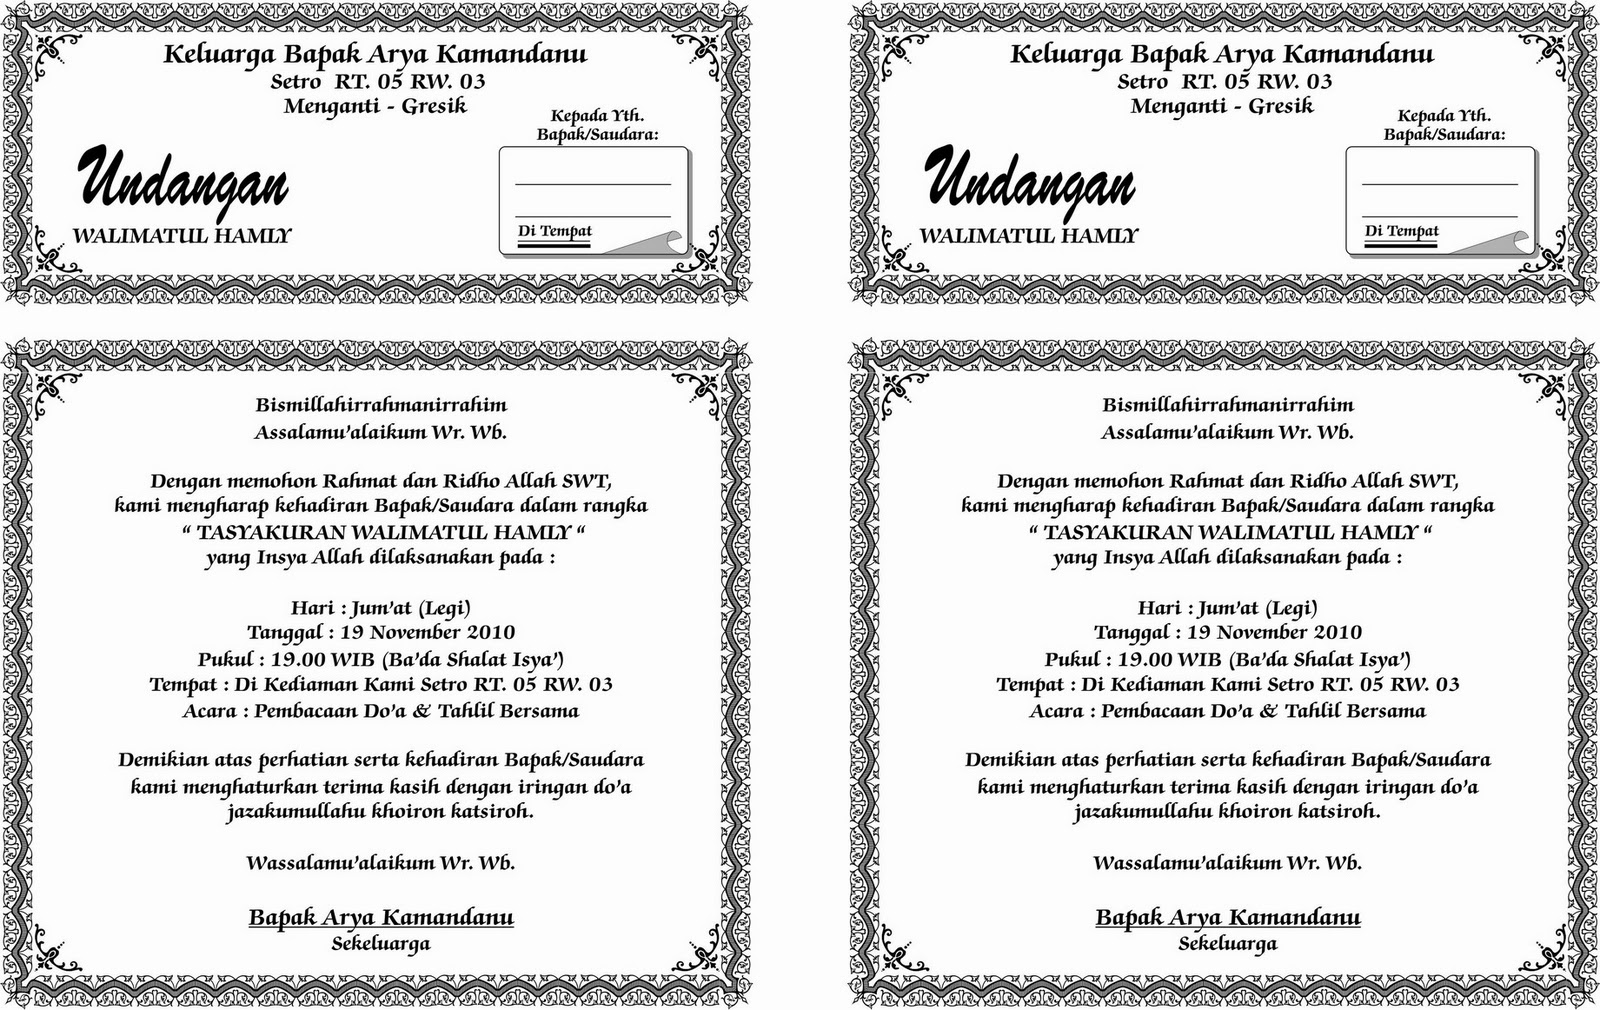 Download Bingkai Undangan